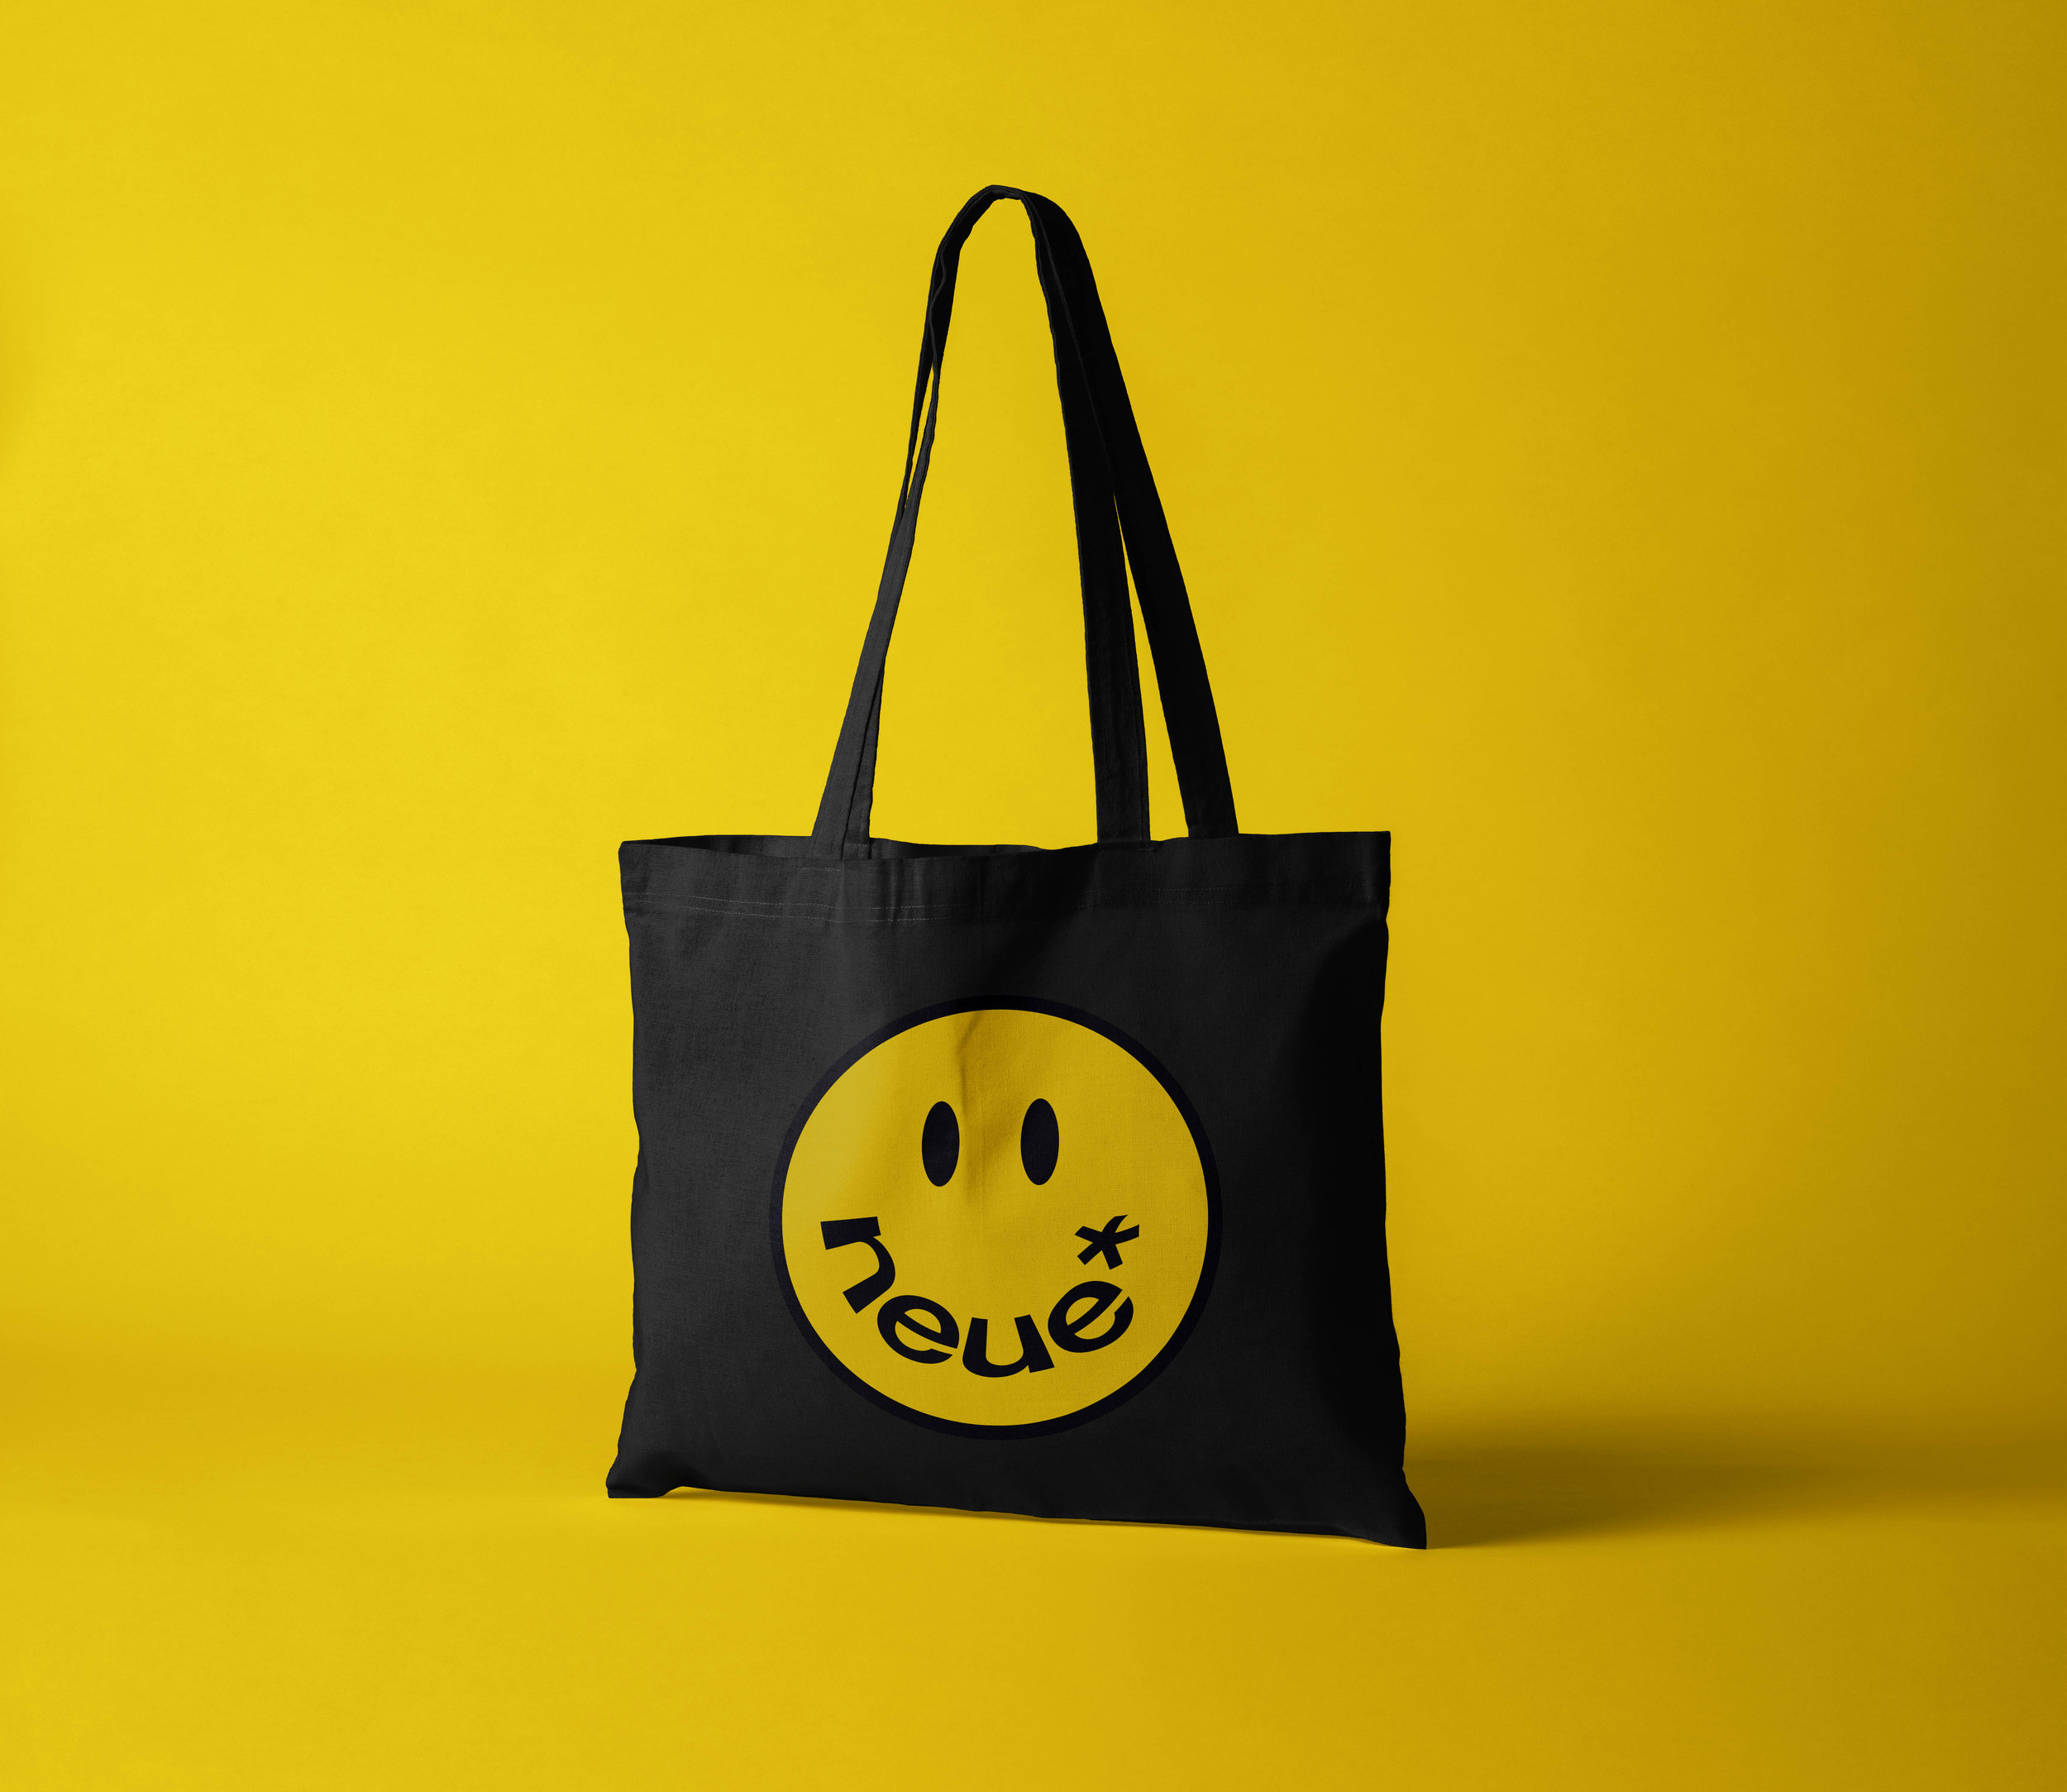 Tote-Bag-Fabric-Mockup-Vol3.jpg